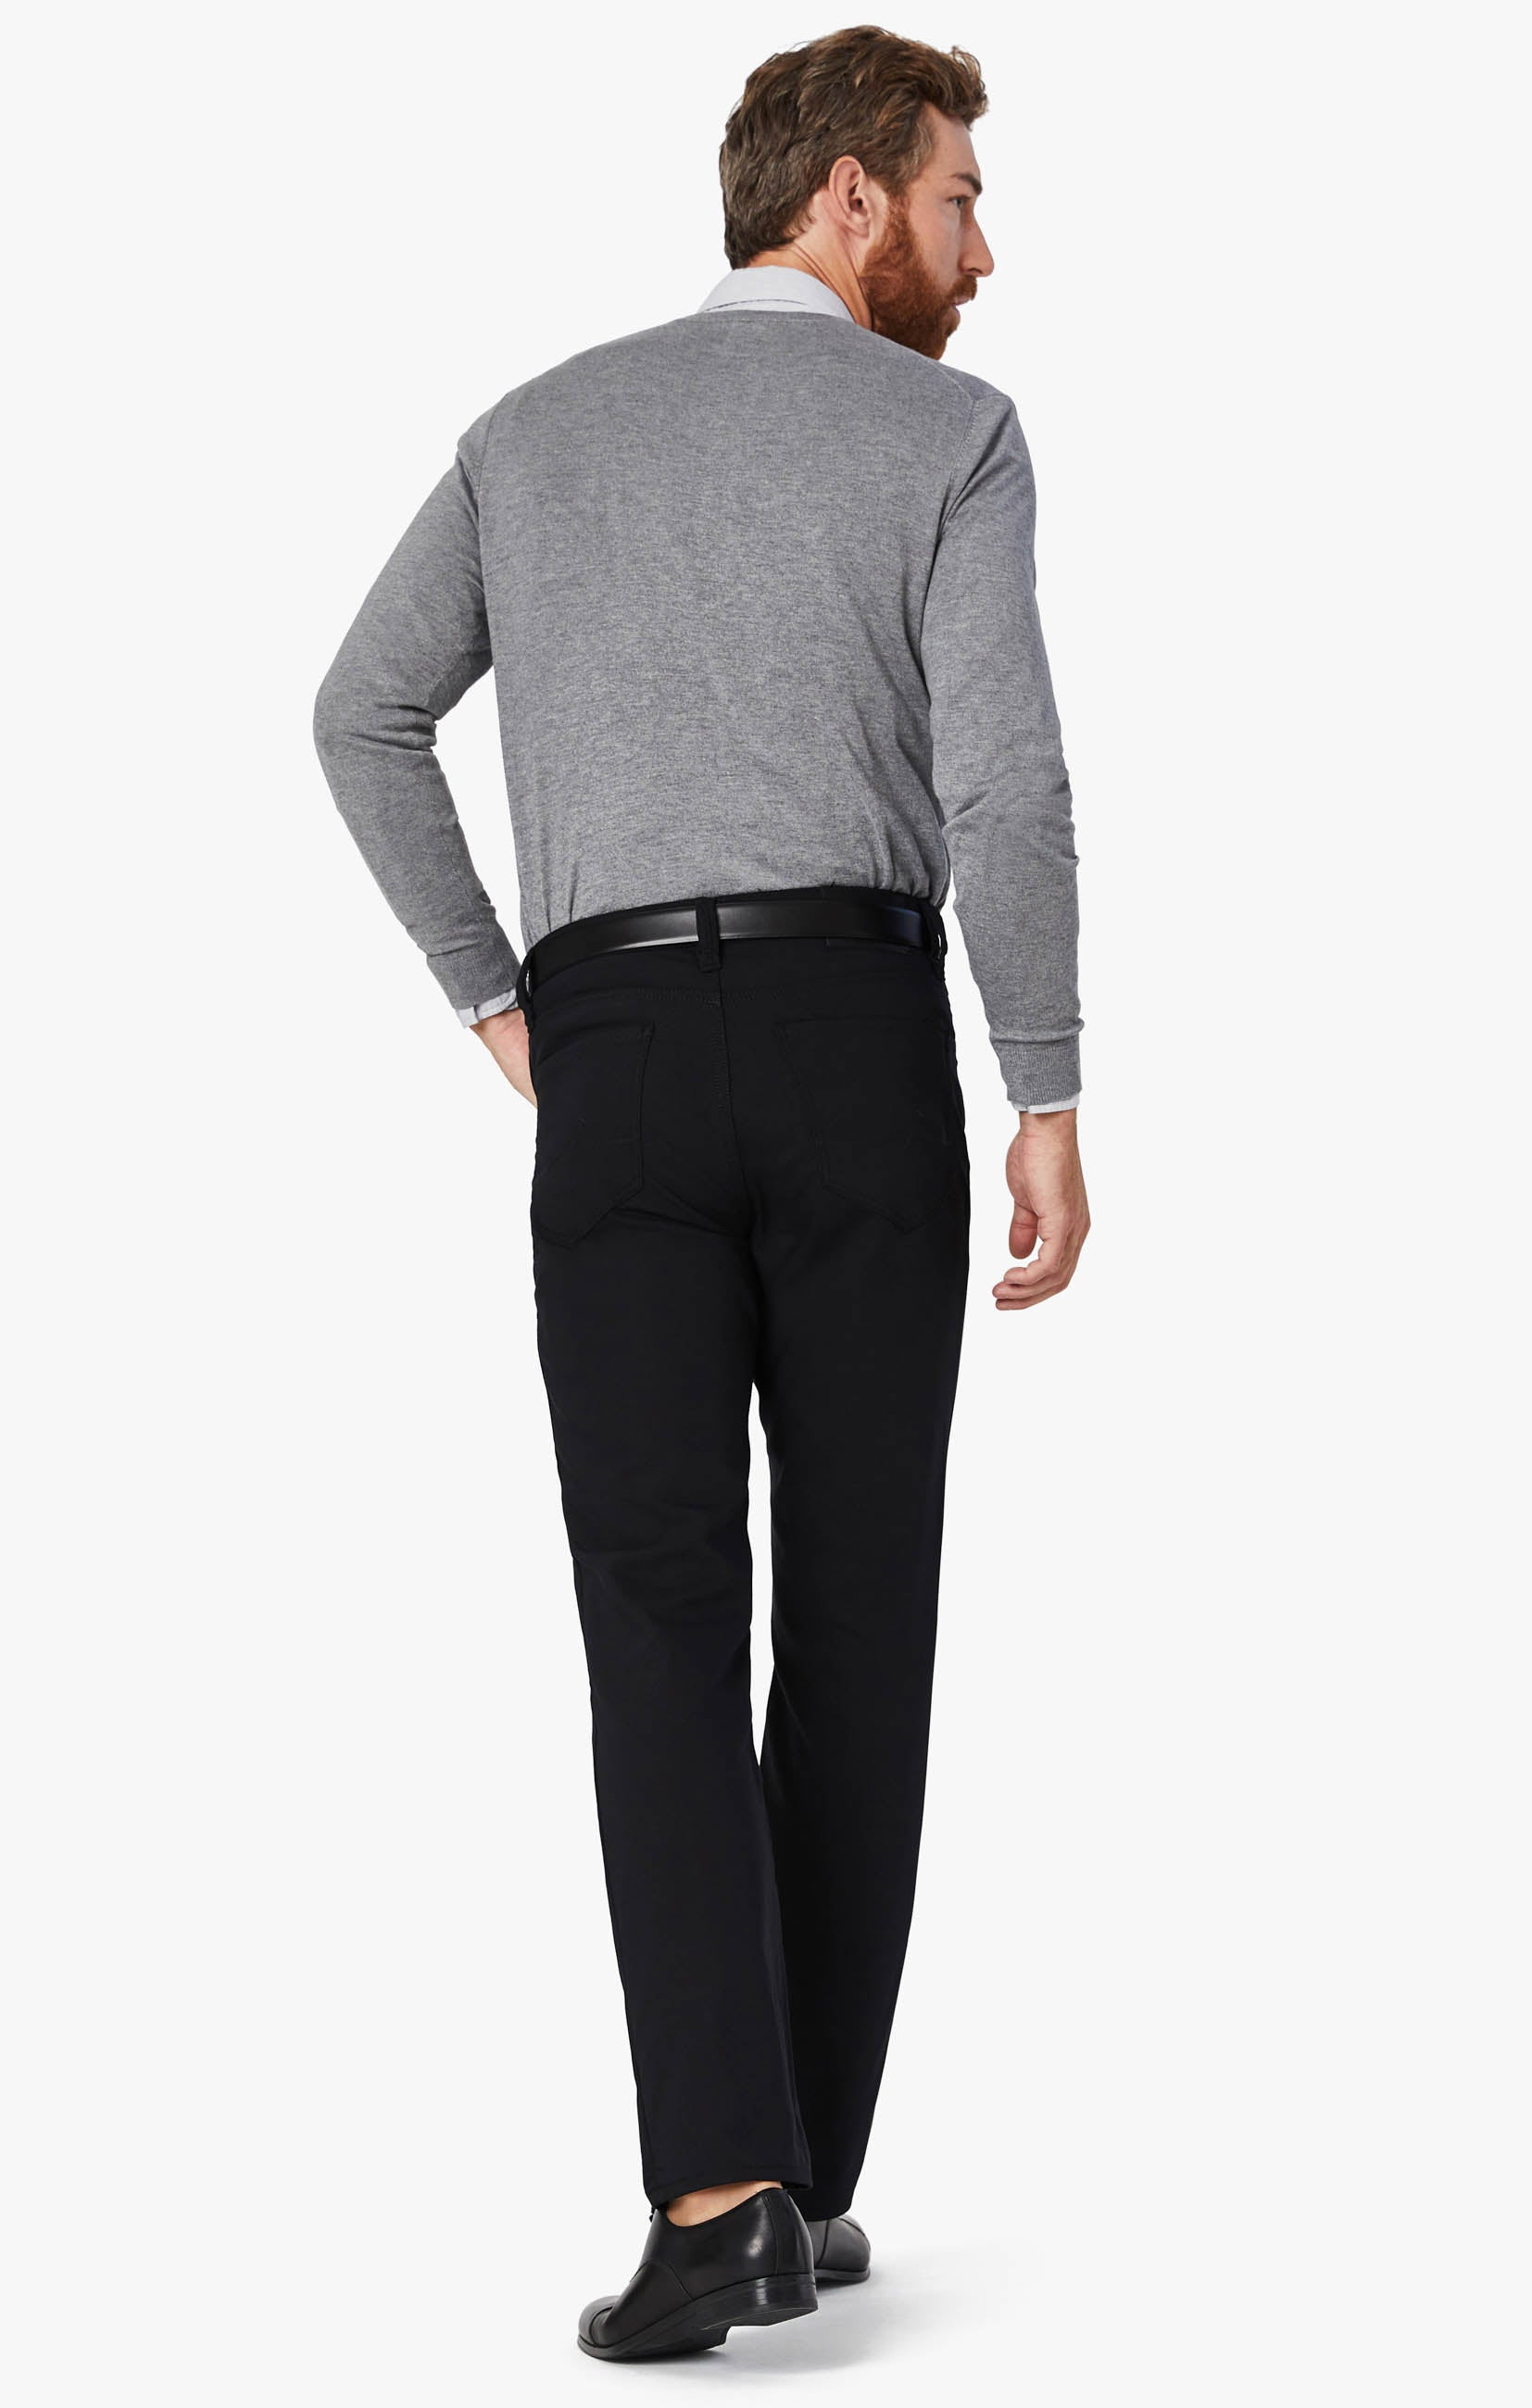 Charisma Relaxed Straight Commuter Pants In Onyx Image 6